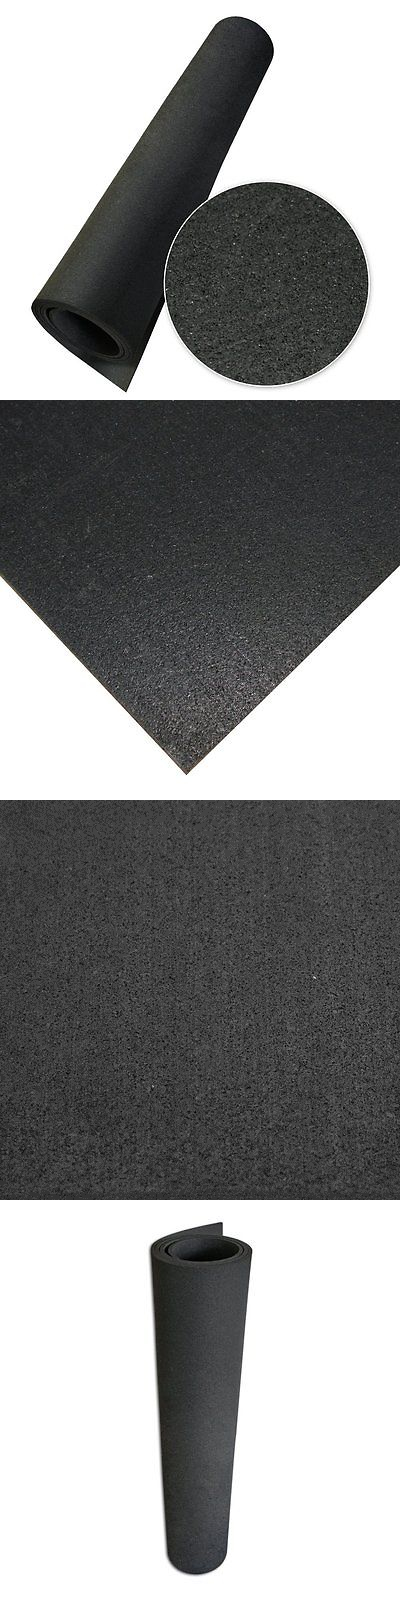 Exercise Mats 44079 Rubber Cal Recycled Floor Mat, Black, 1 4-Inch